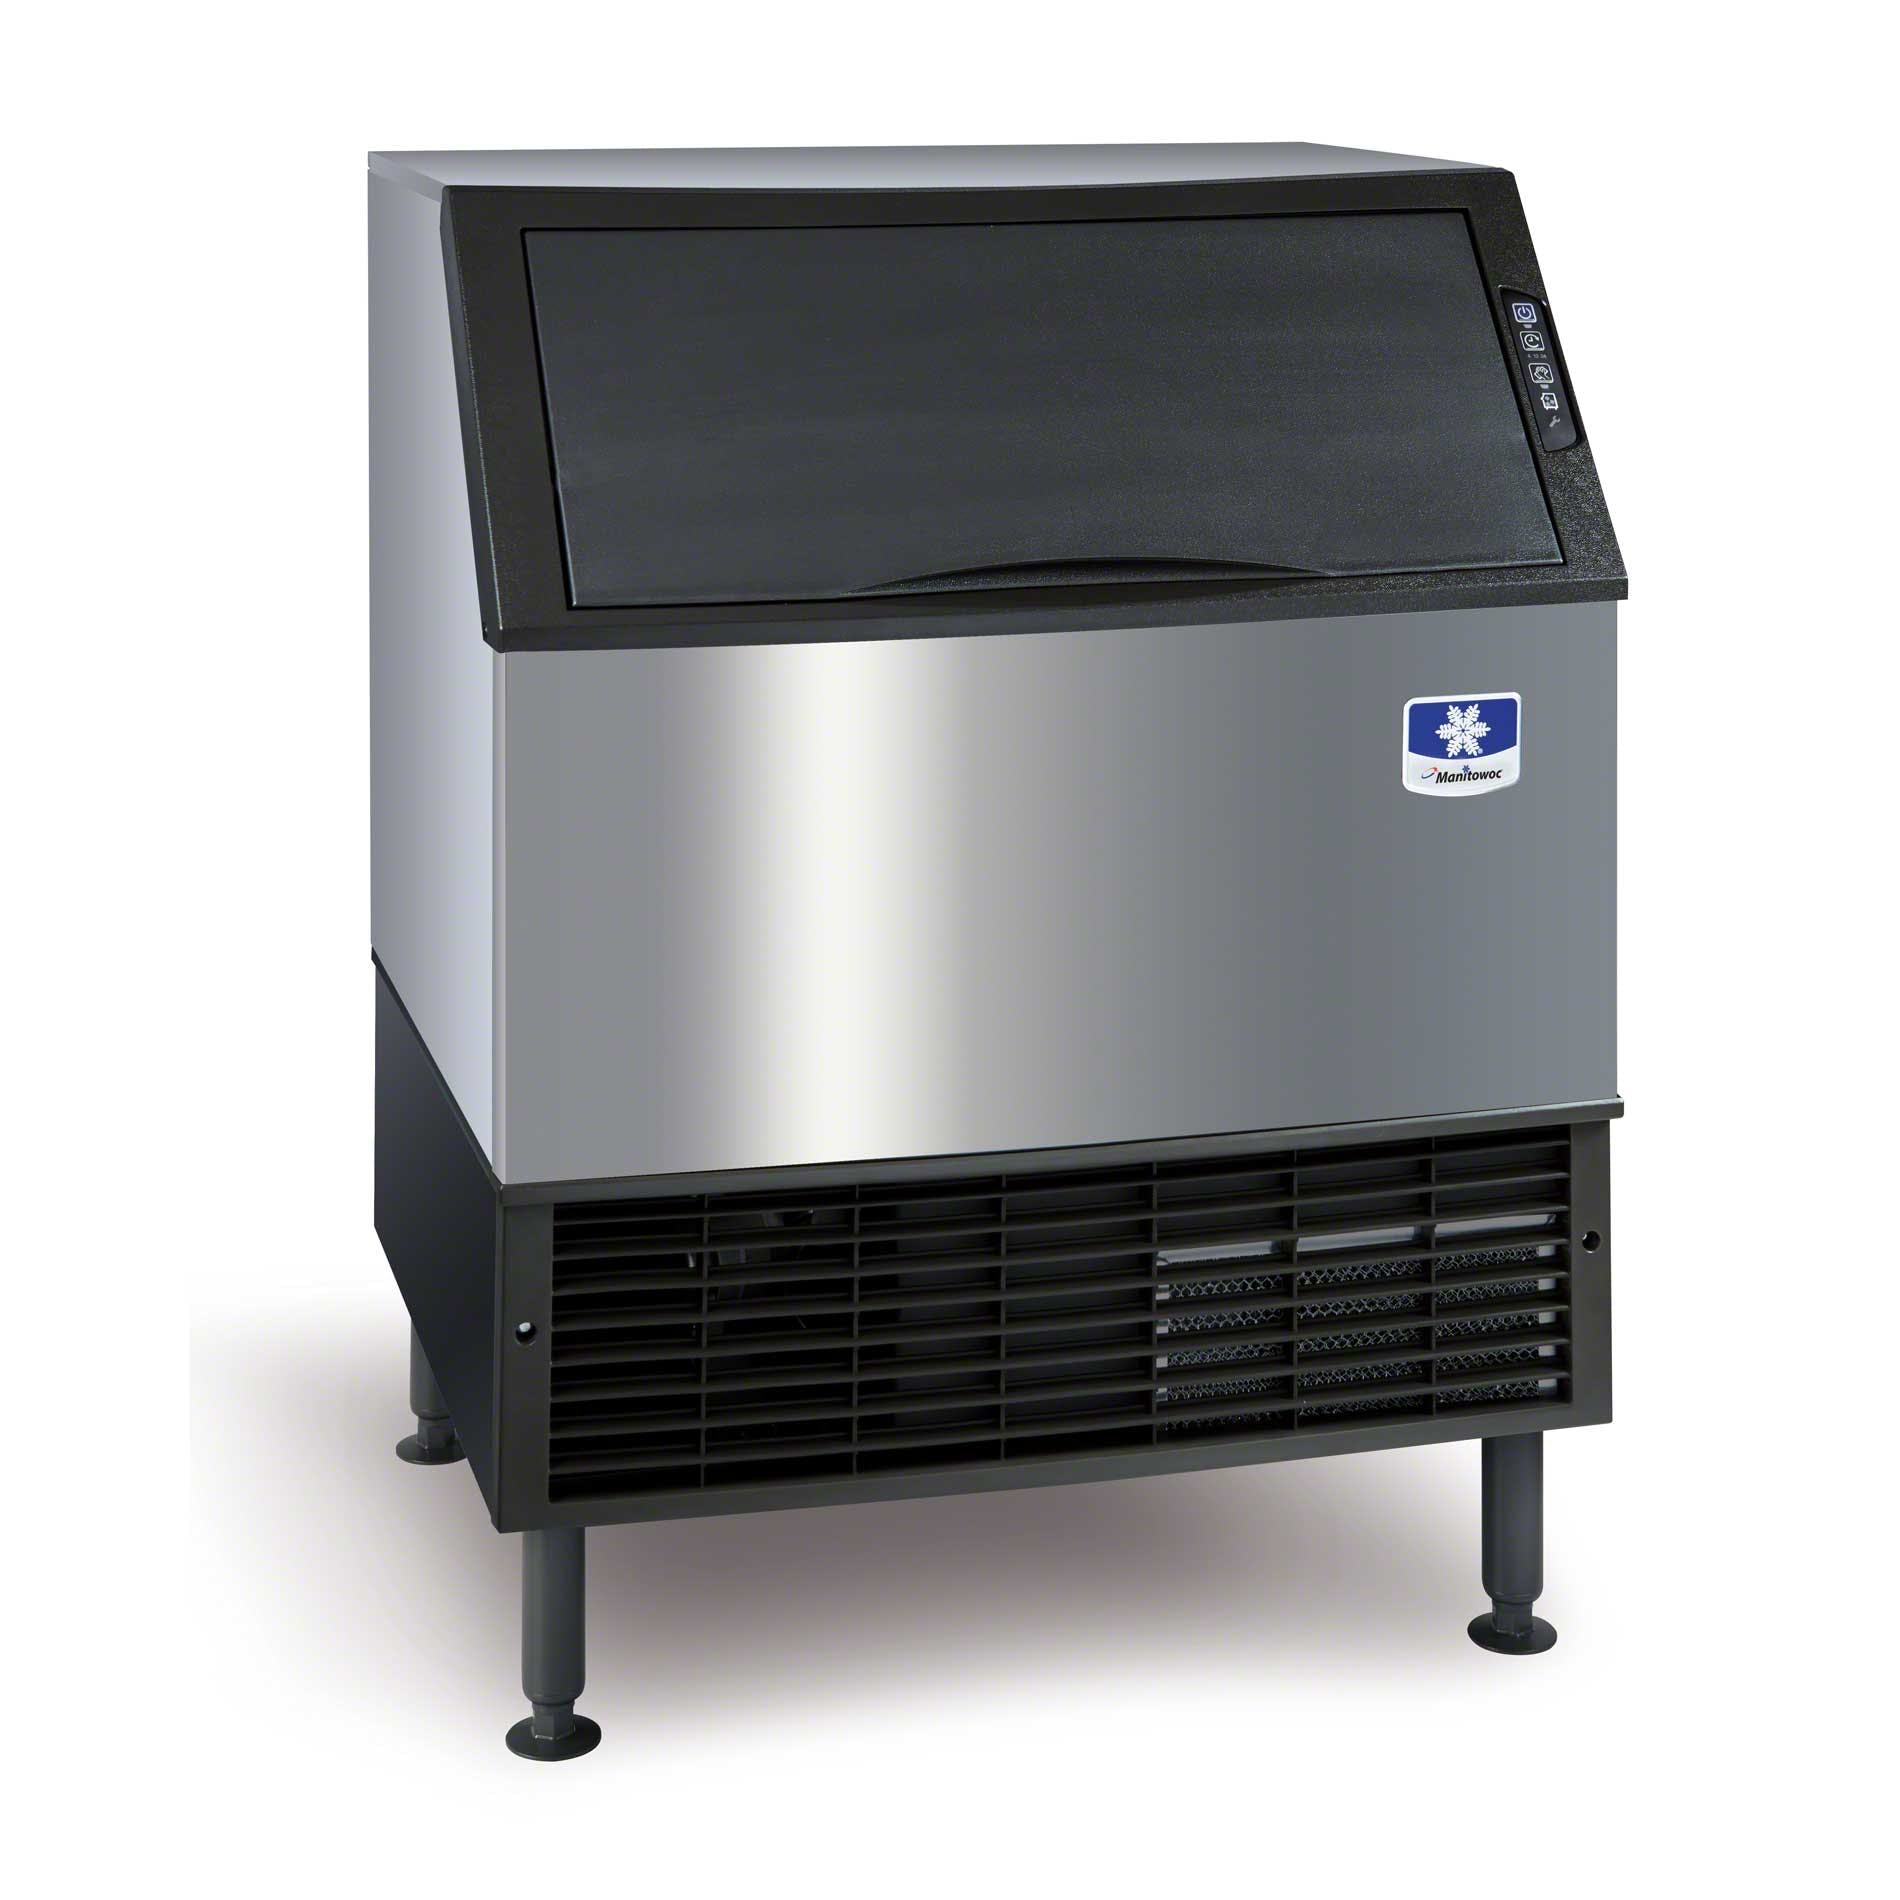 Manitowoc - UD-0310W 271 lb Cube Undercounter Ice Machine - U-310 Neo Series Ice machine sold by Food Service Warehouse